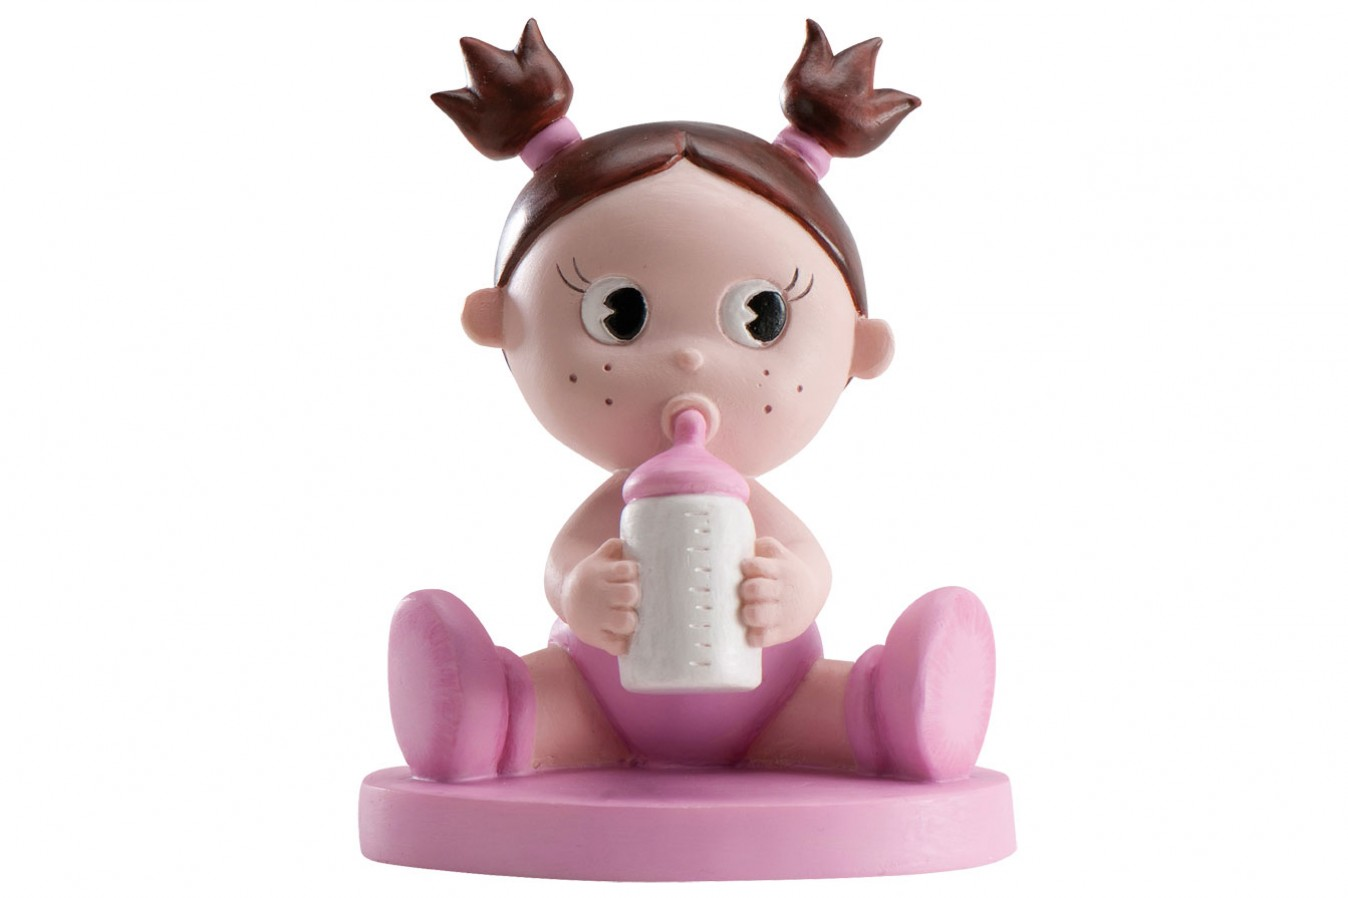 Cake Toppers Baby Girl : Cake Topper: Baby Girl with Bottle, Pink Doric Cake Crafts